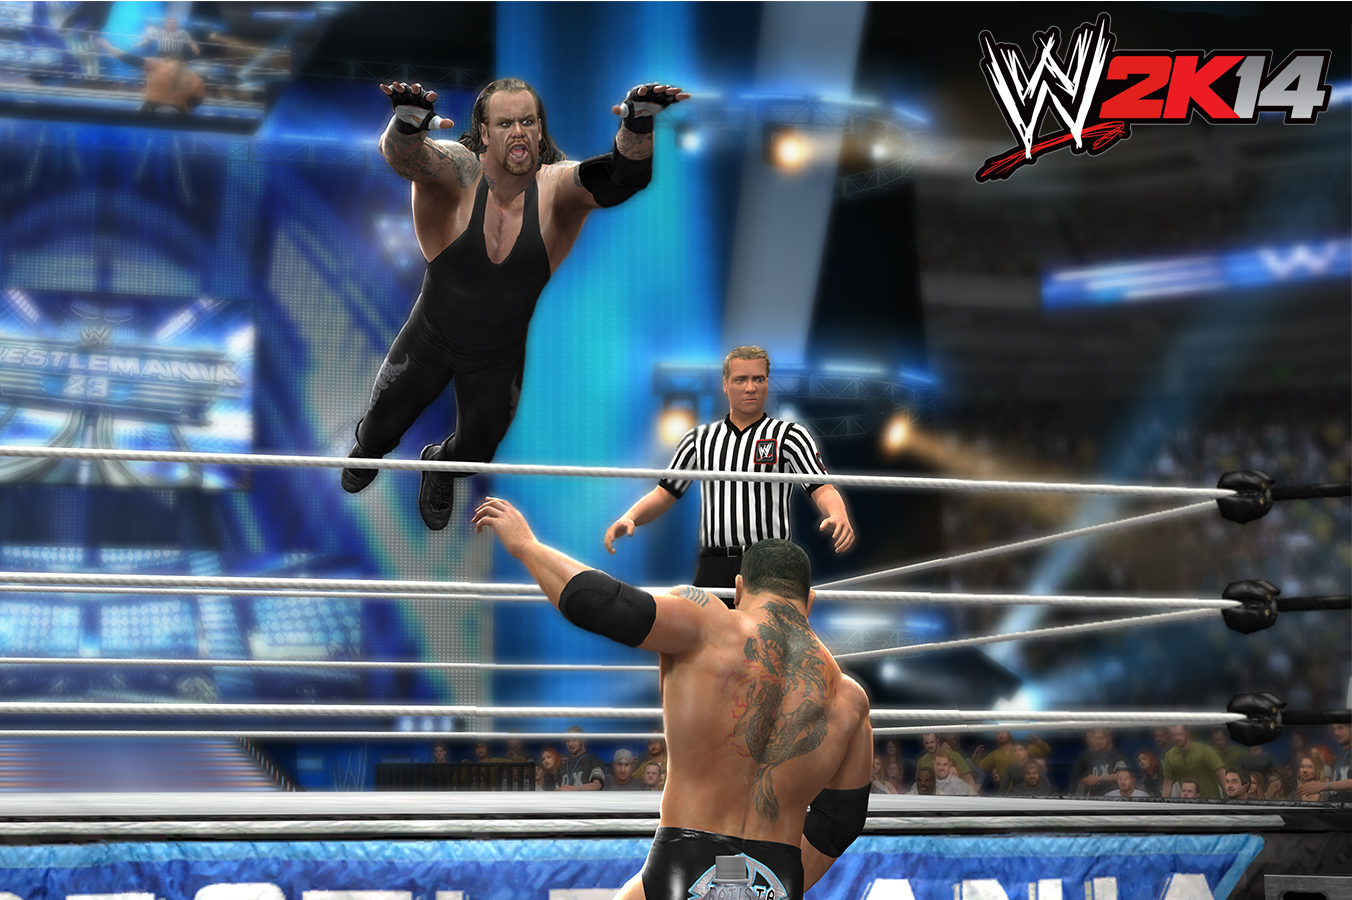 WWE 2k14 (Video Game 2013) - WWE 2k14 (Video Game 2013 ...